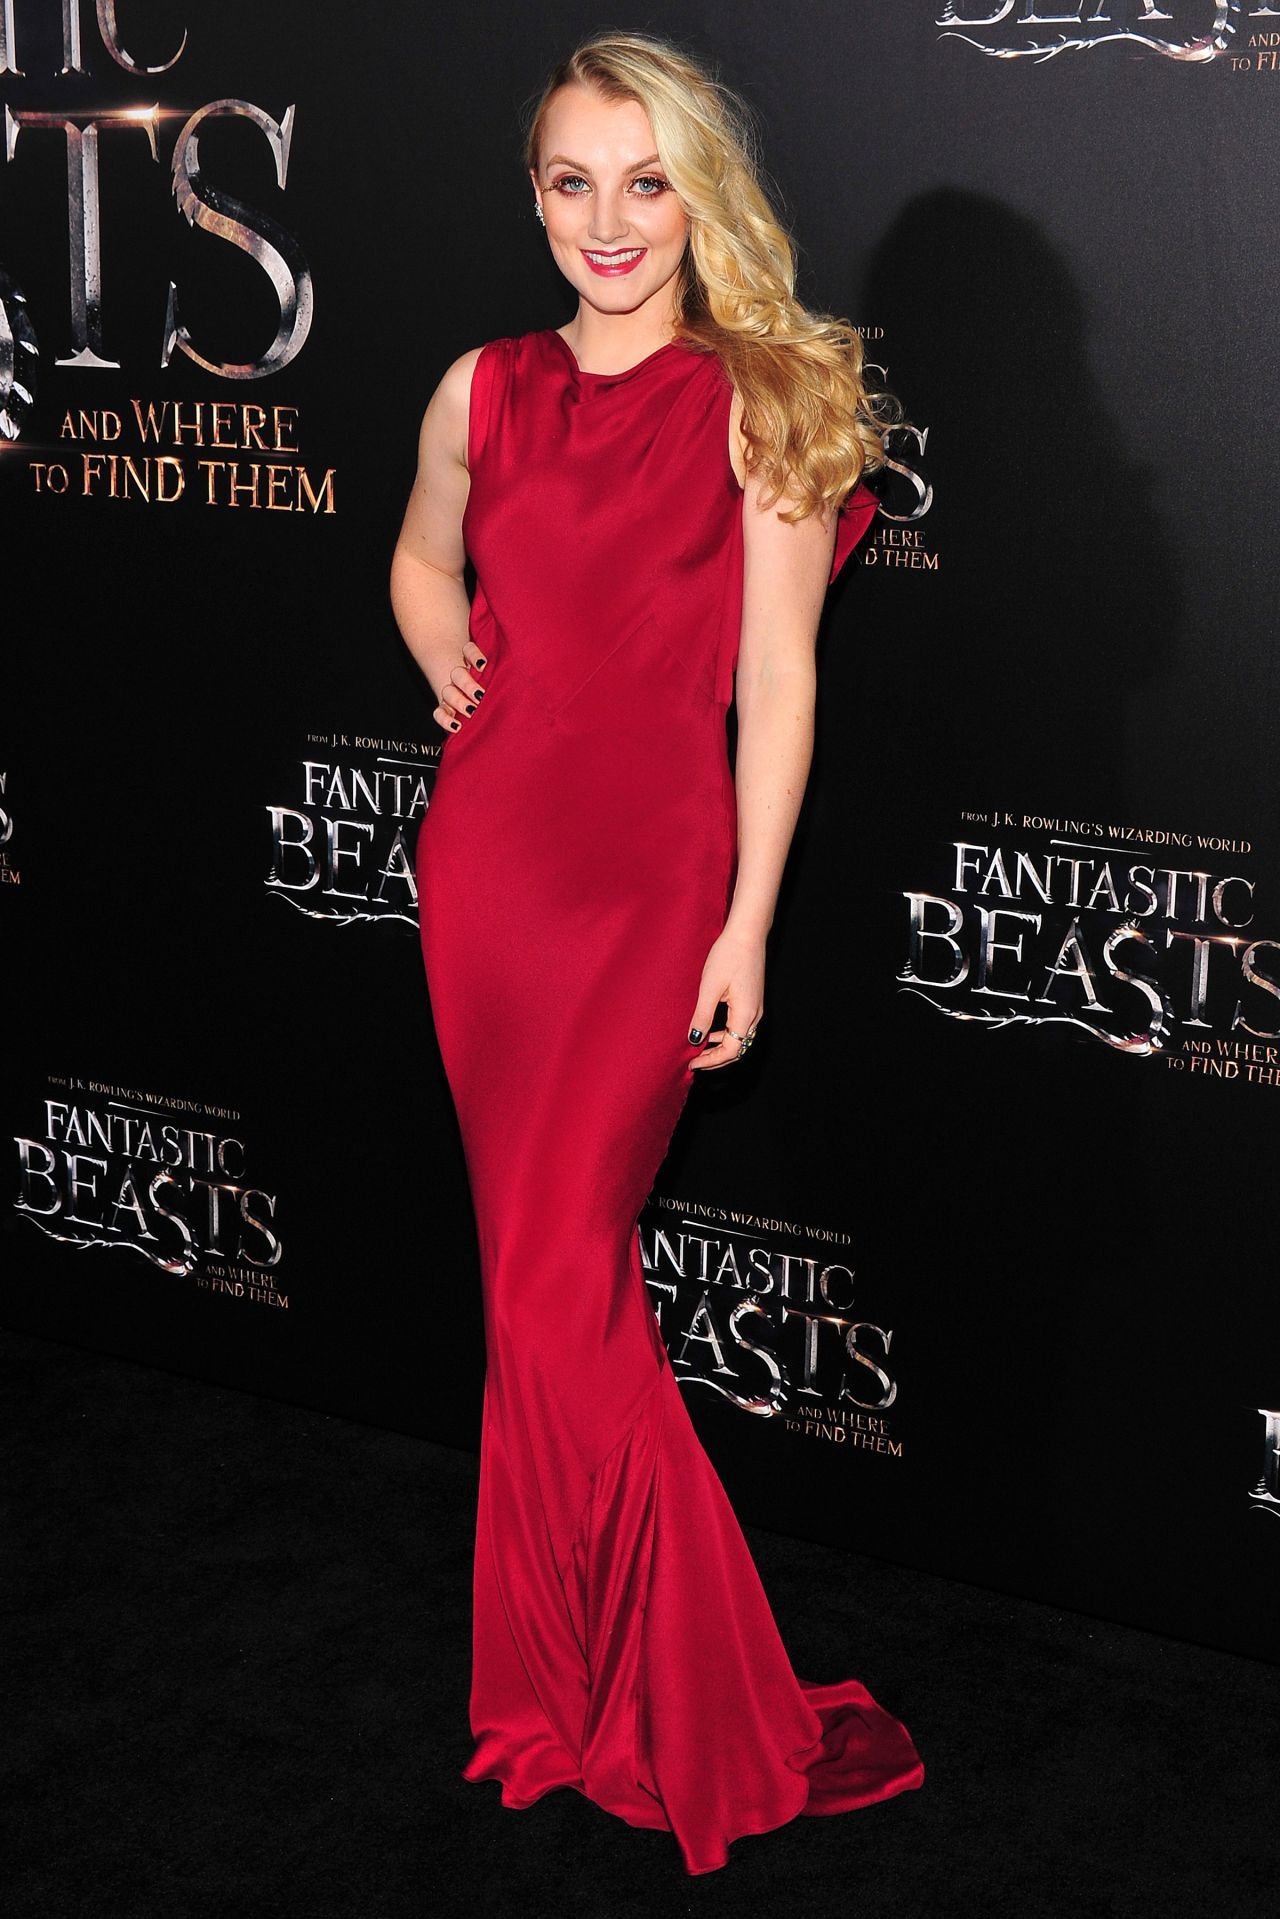 evanna-lynch-fantastic-beasts-and-where-to-find-them-premiere-in-new-york-city-15.jpg